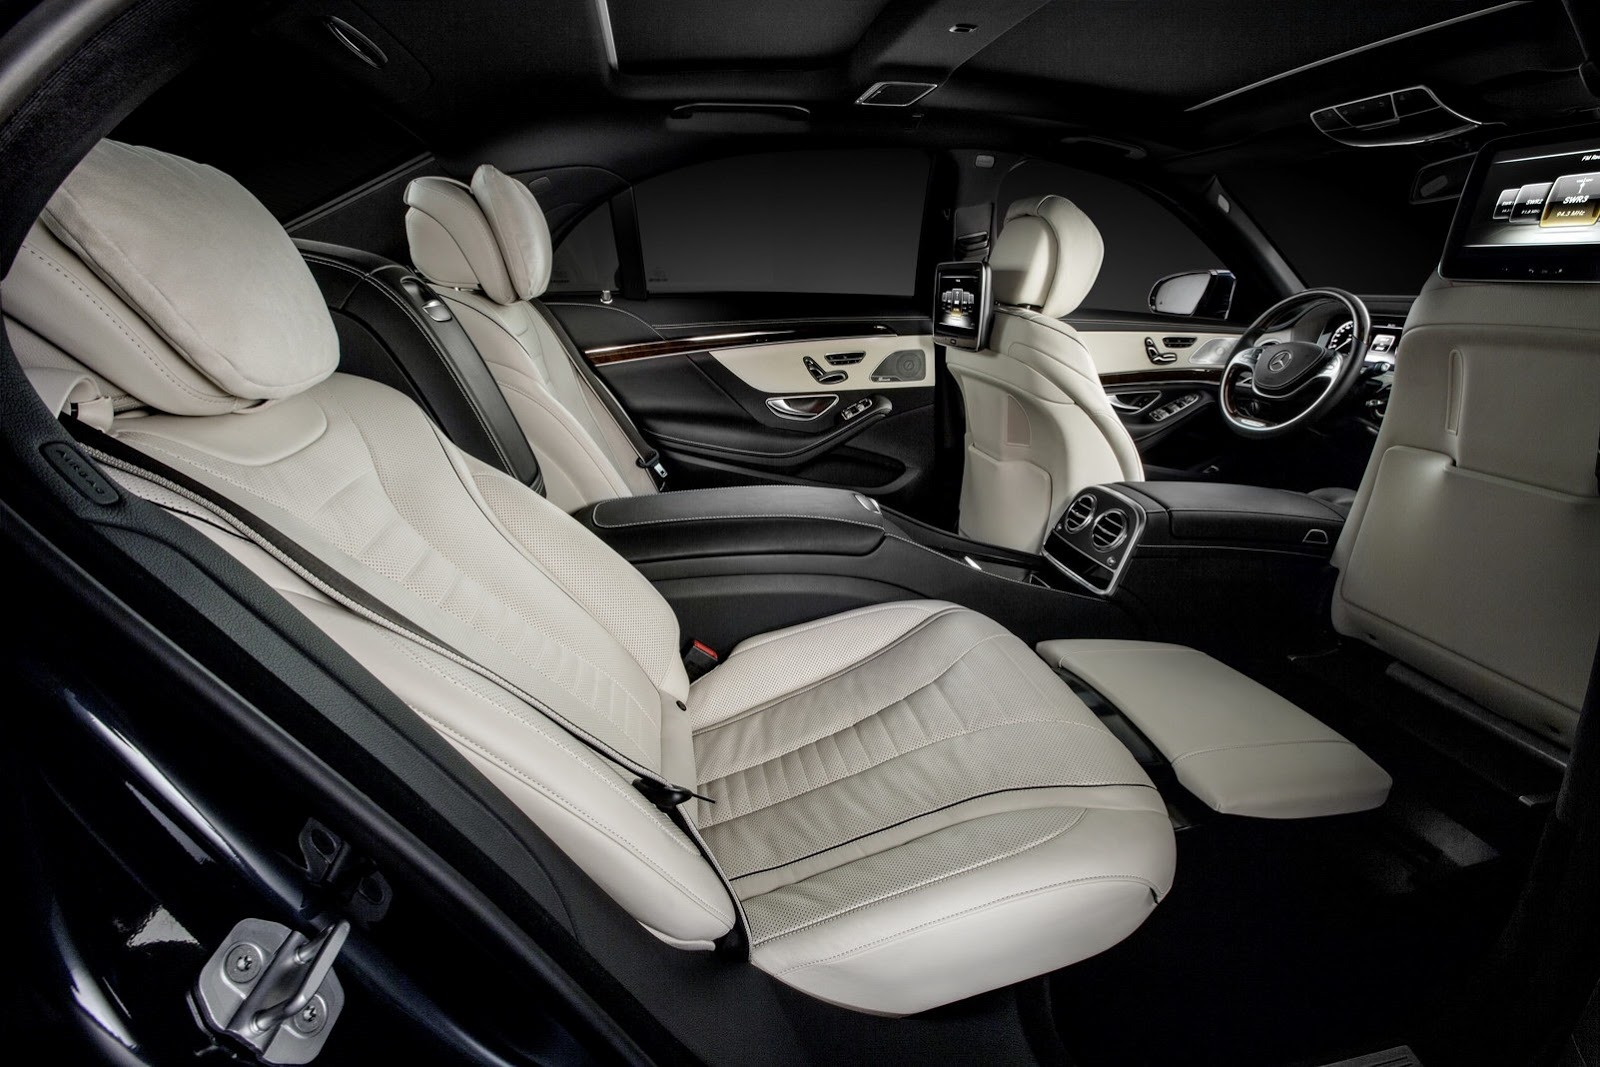 2014 Mercedes Benz S-Class - SMADE MEDIA (19)